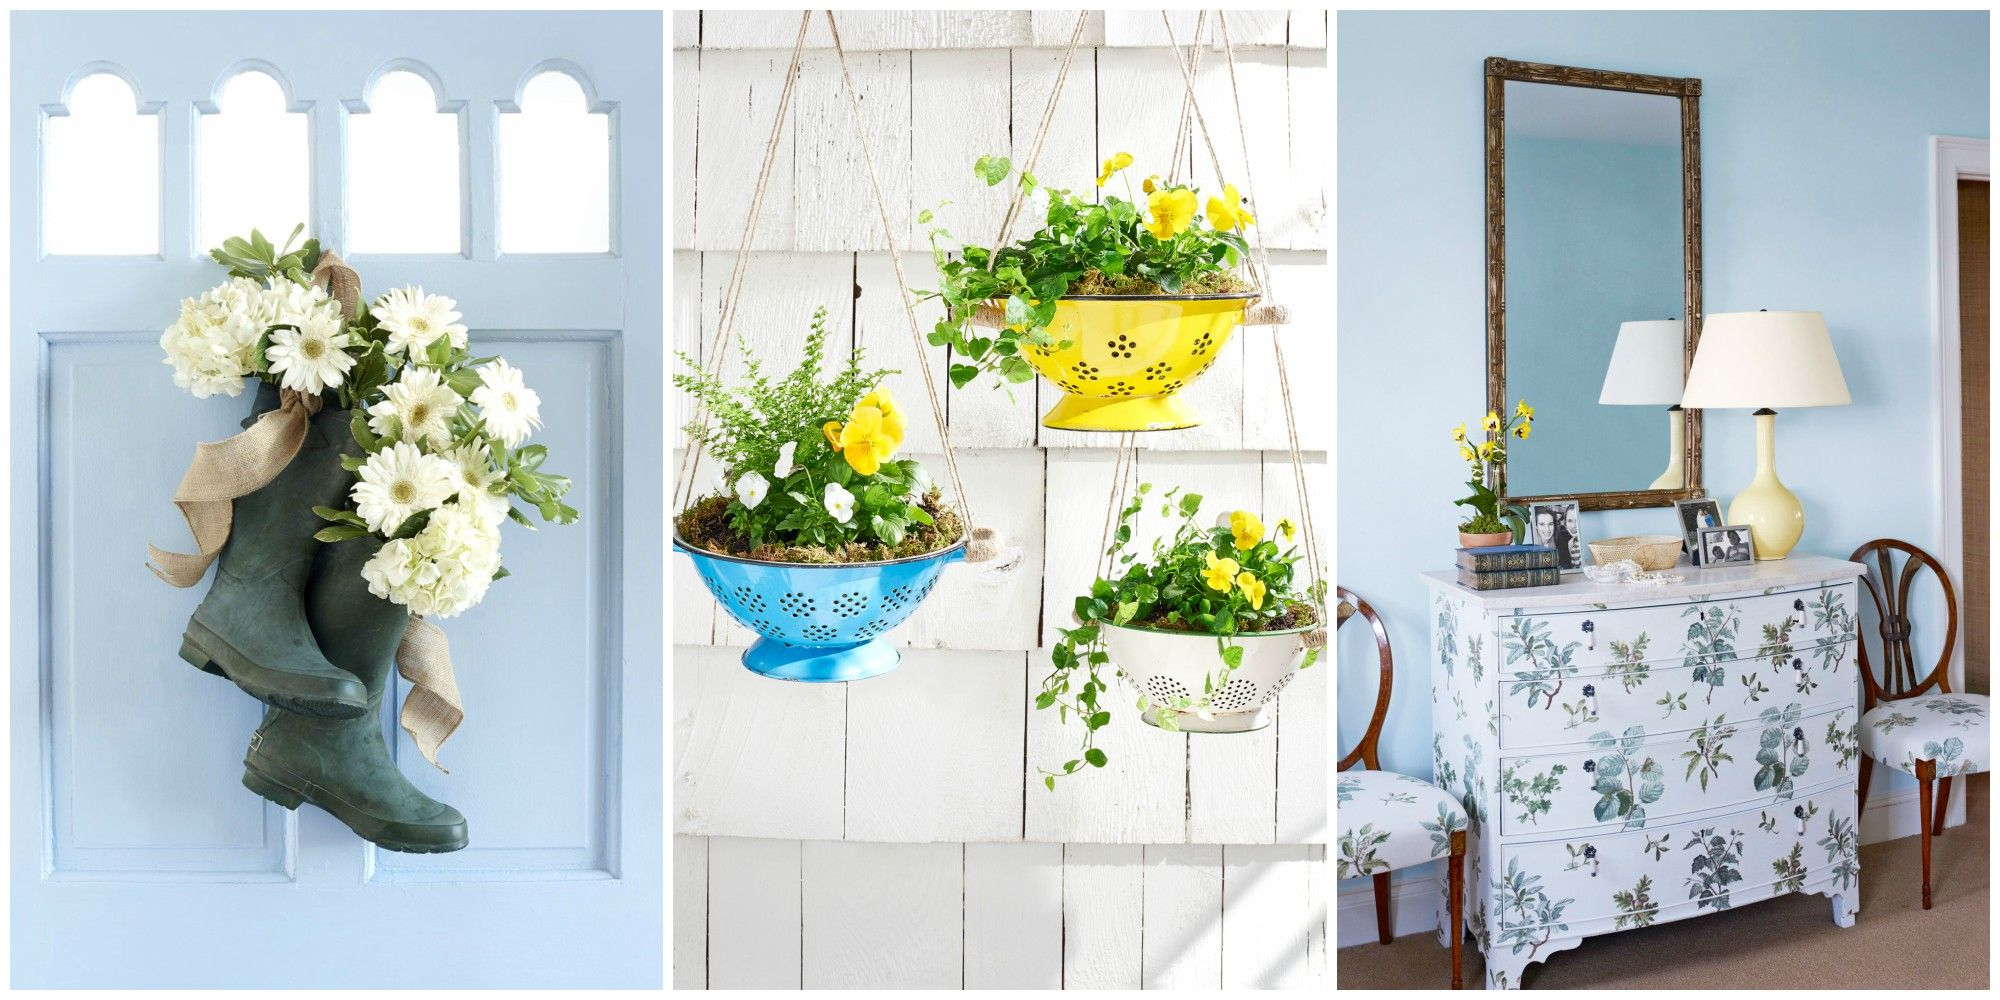 These Simple Projects Will Infuse Your Home With A Breath Of Fresh Country  Air. Also Check Out These Pretty DIY Wreaths And Beautiful Flower Craft  Ideas For ...